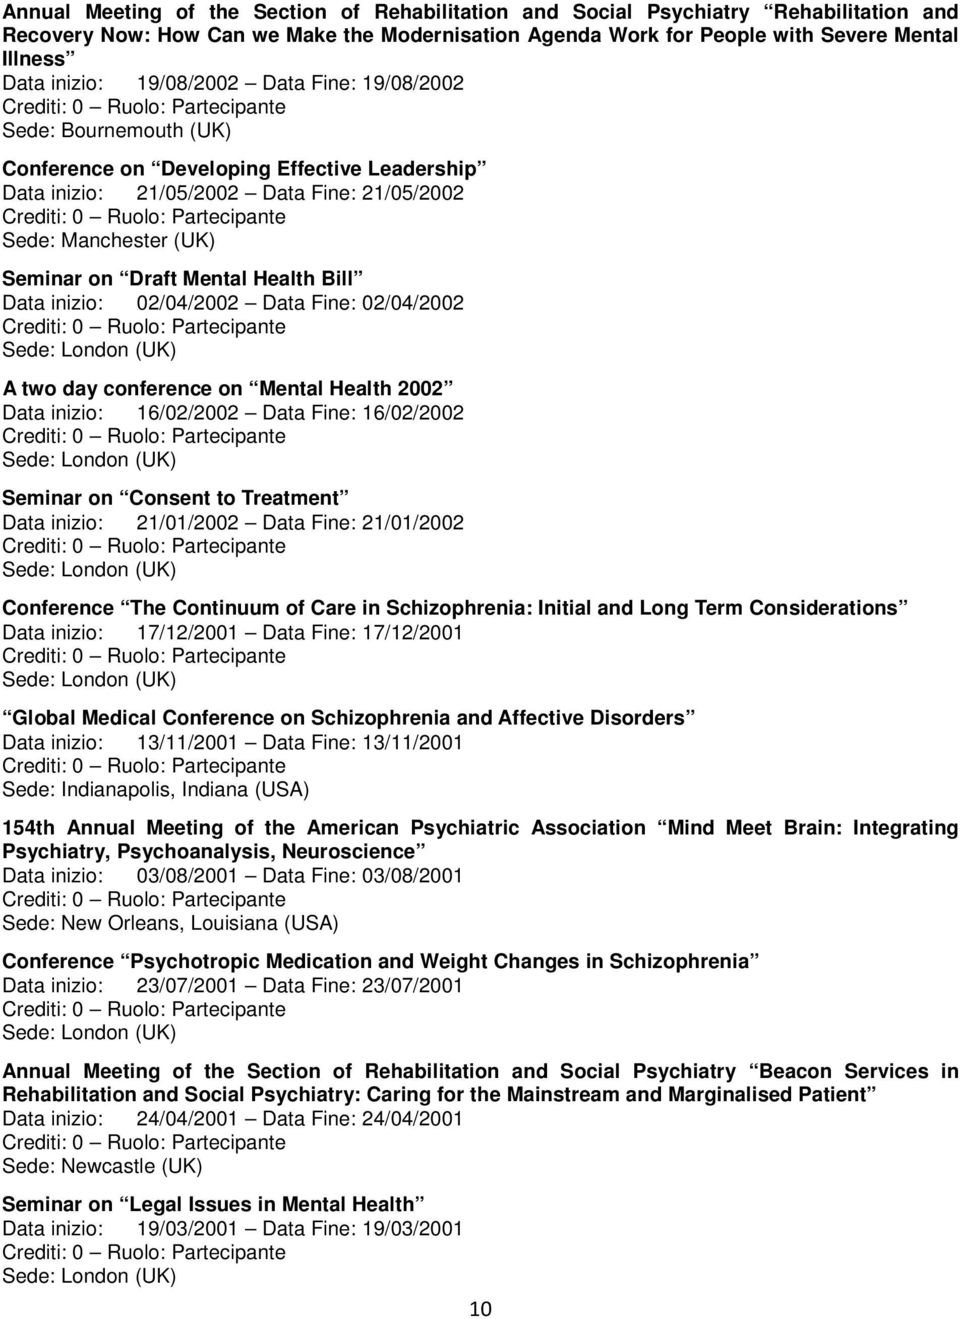 Health Bill Data inizio: 02/04/2002 Data Fine: 02/04/2002 A two day conference on Mental Health 2002 Data inizio: 16/02/2002 Data Fine: 16/02/2002 Seminar on Consent to Treatment Data inizio: